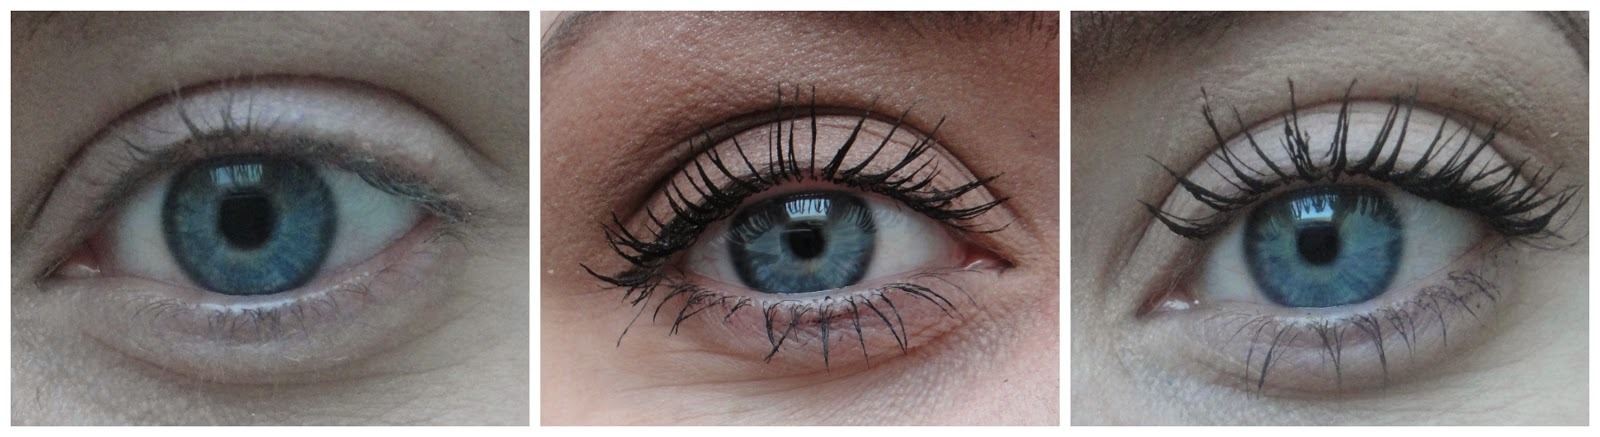 http://emandhanxo.blogspot.co.uk/2015/04/maybelline-lash-sensational-lash.html